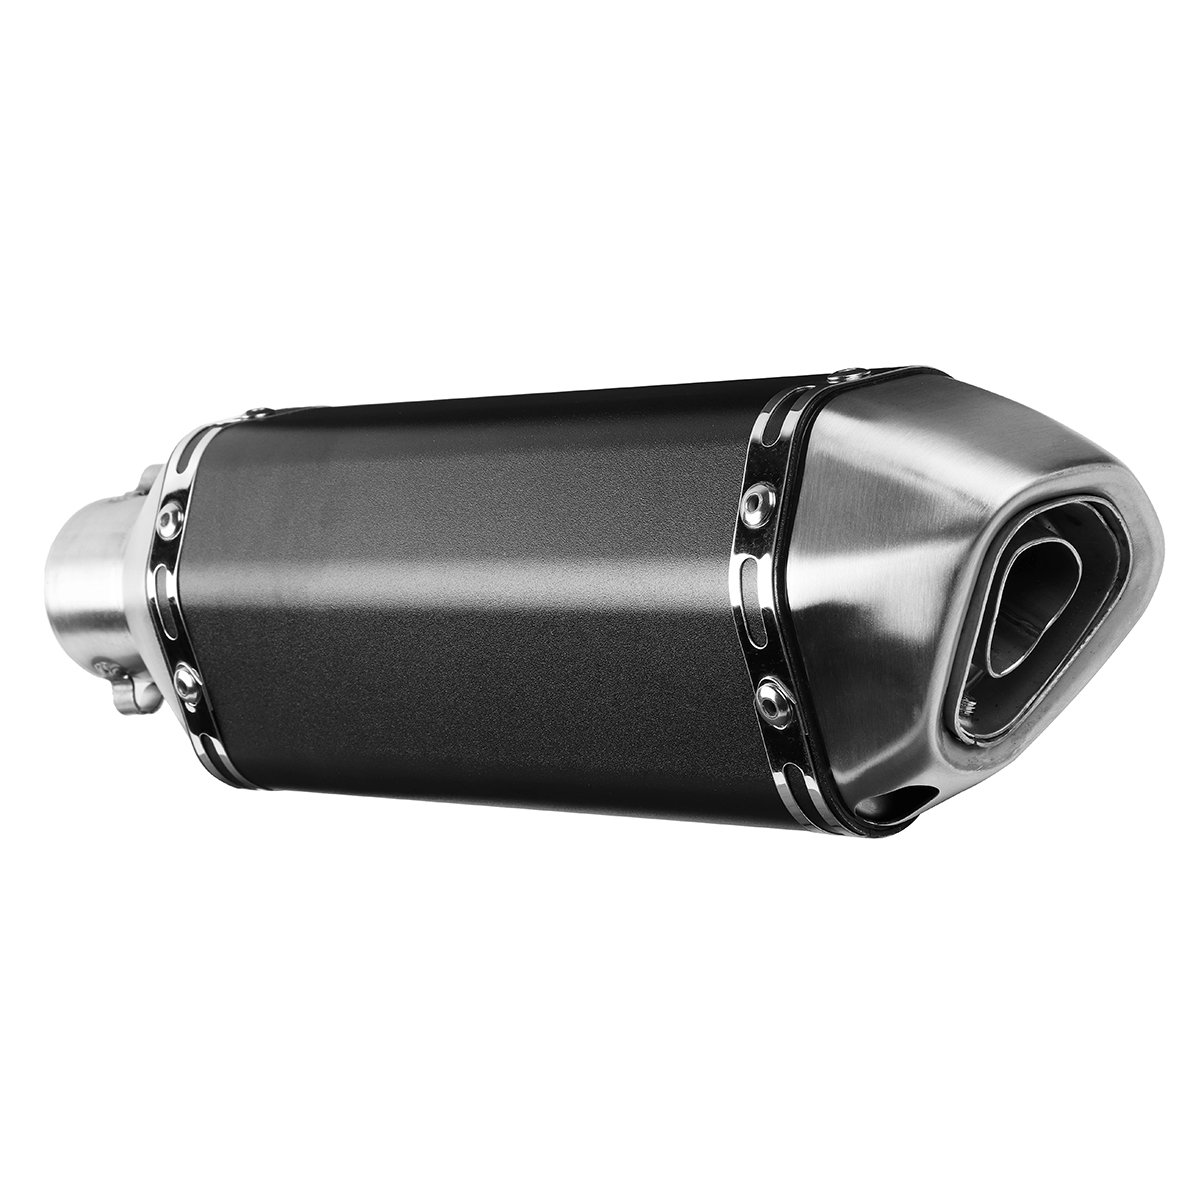 Kungfu Mall 38mm-51mm Motorcycle Exhaust Muffler Pipe with Silencer Slip-On Scooter Universal